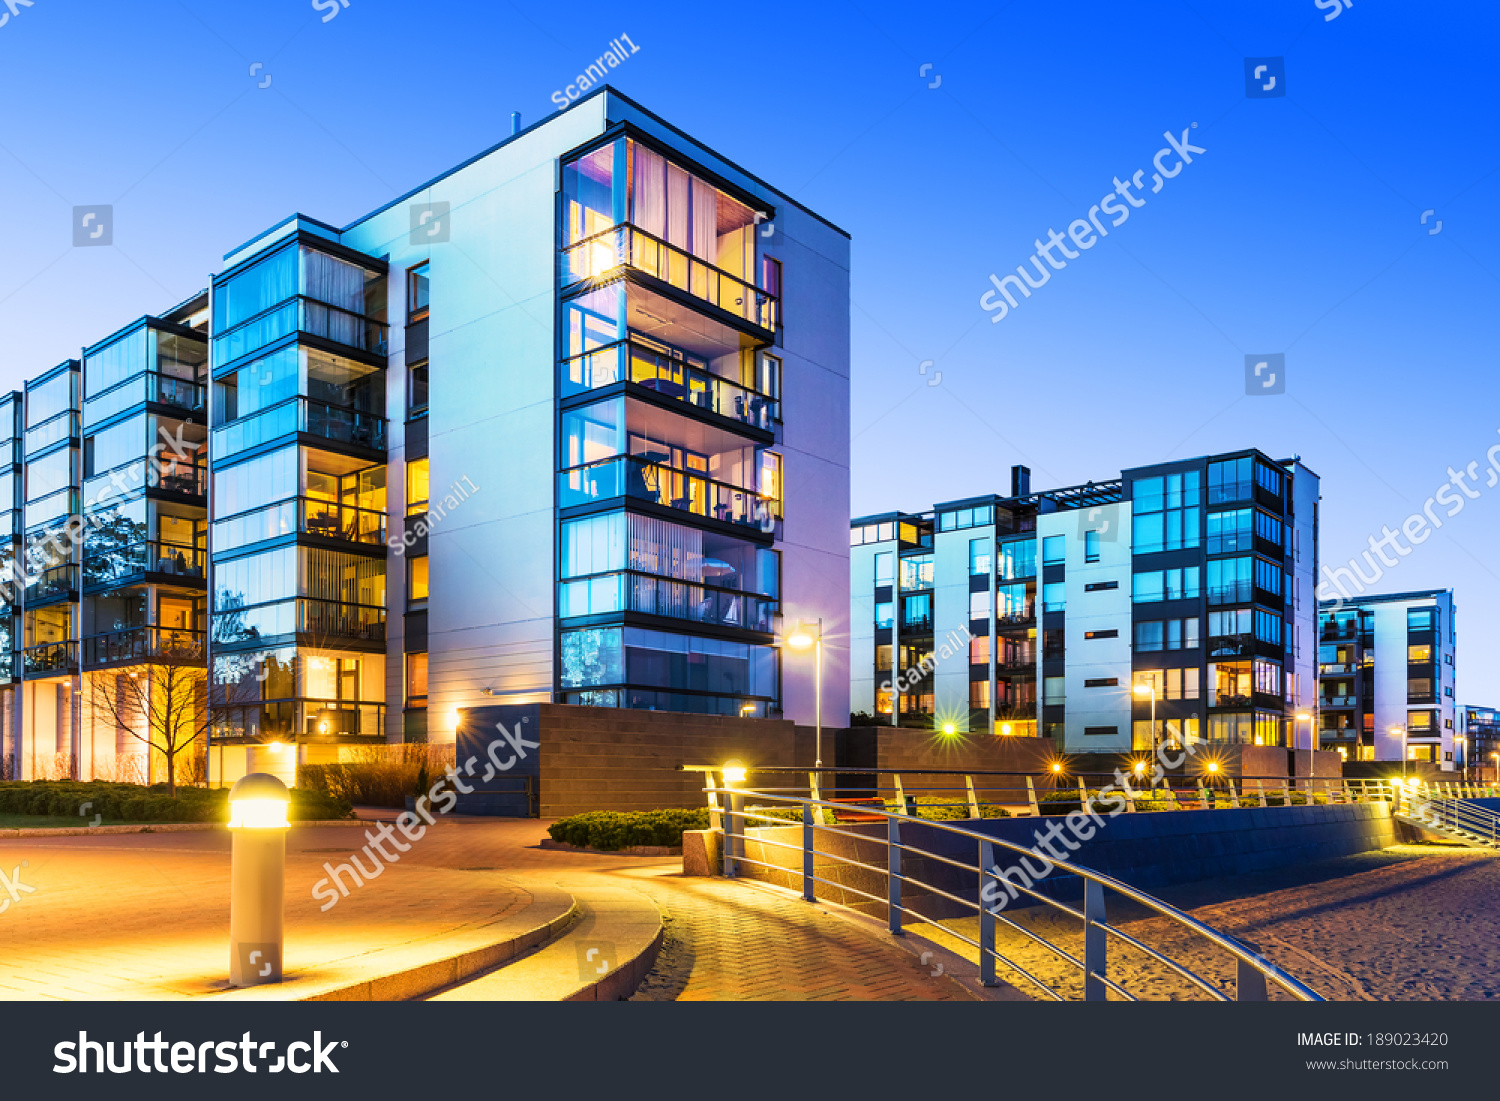 House building city construction concept evening stock for Concept home builders